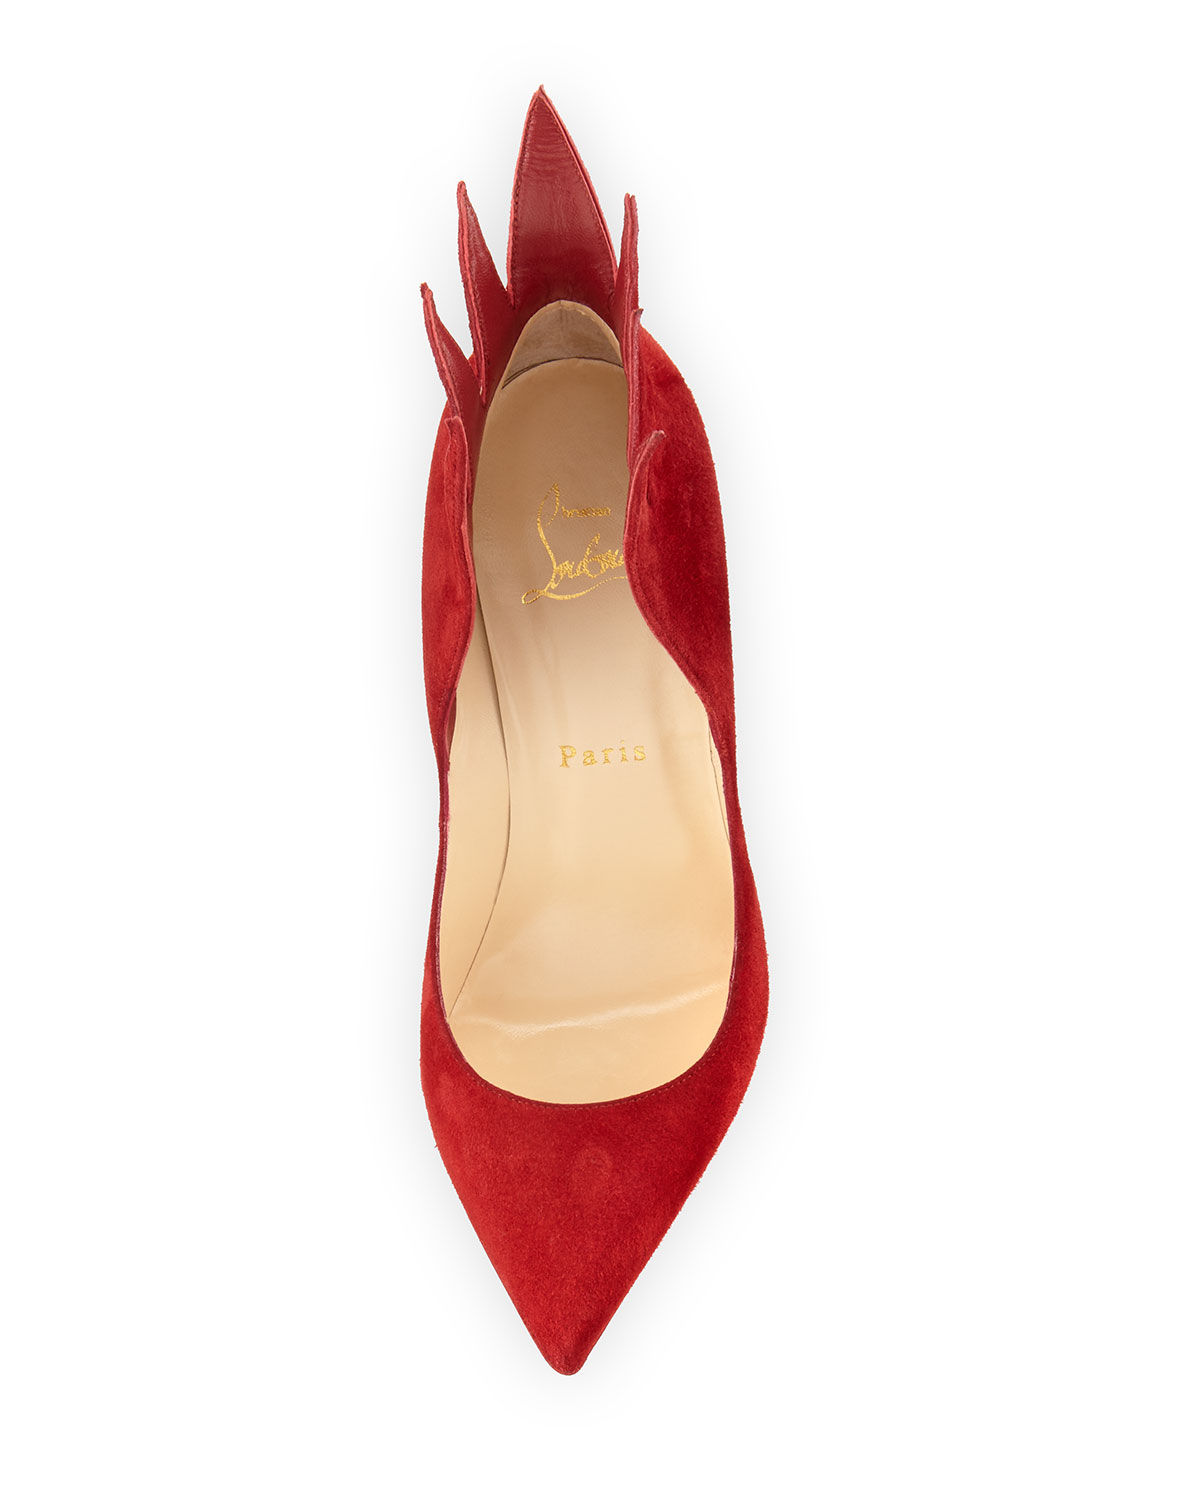 19bbcd3abf9 Victorina Flame 100mm Red Sole Pump, Carmin Red